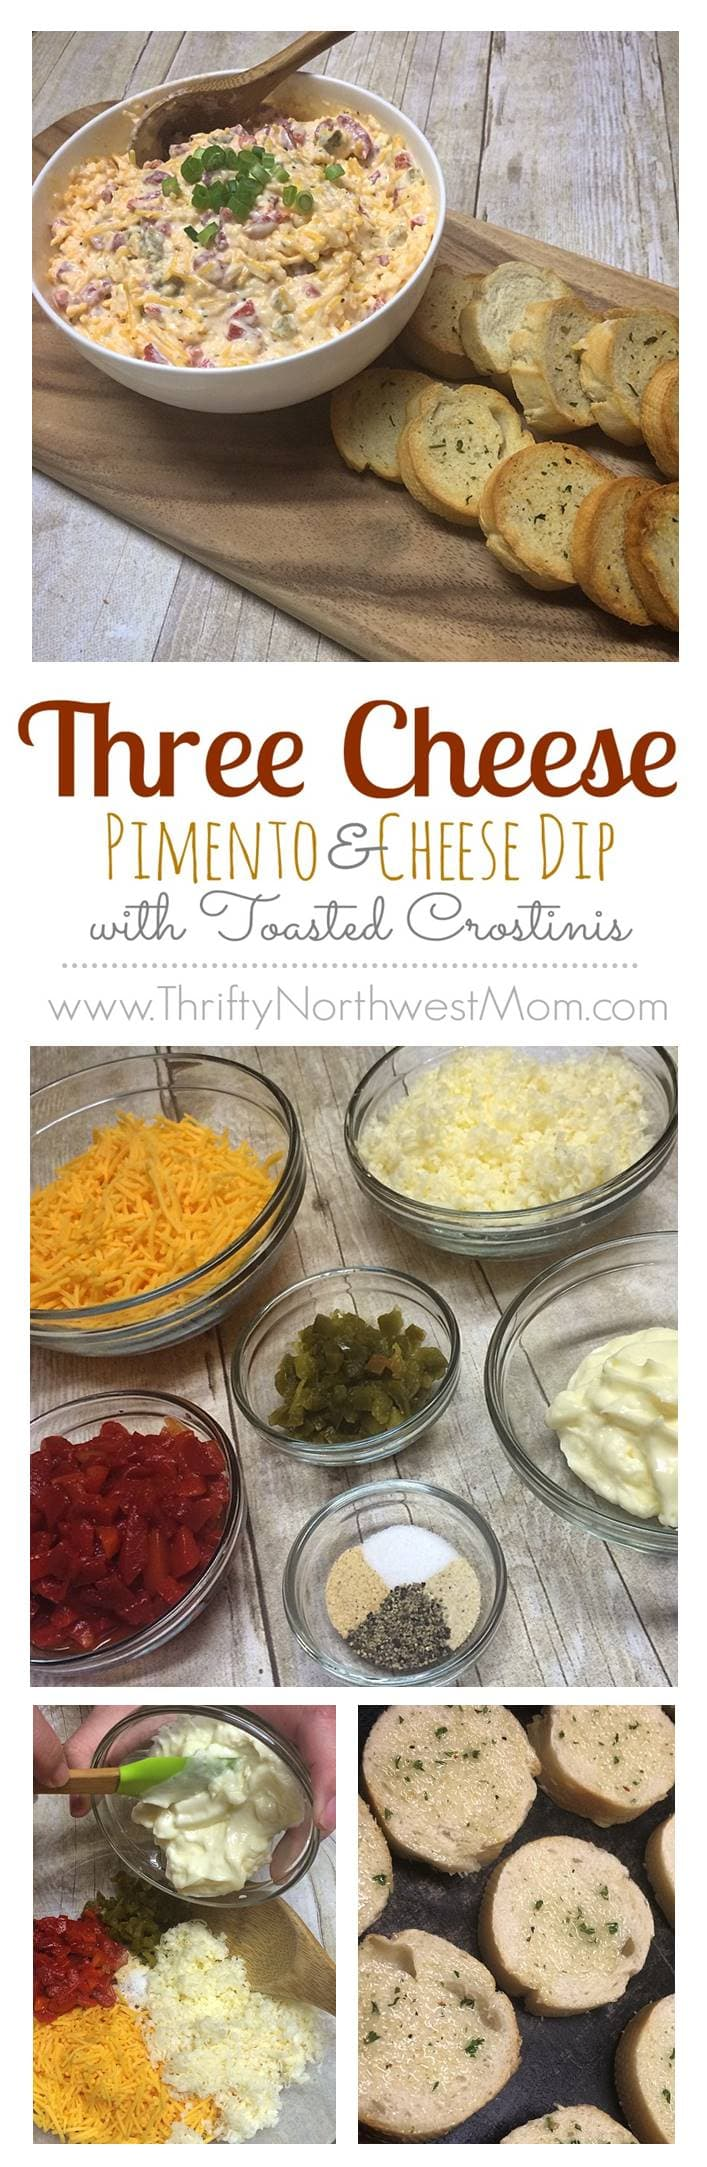 1.10 Three Cheese Pimento and Cheese Dip VERTICAL - FOUR